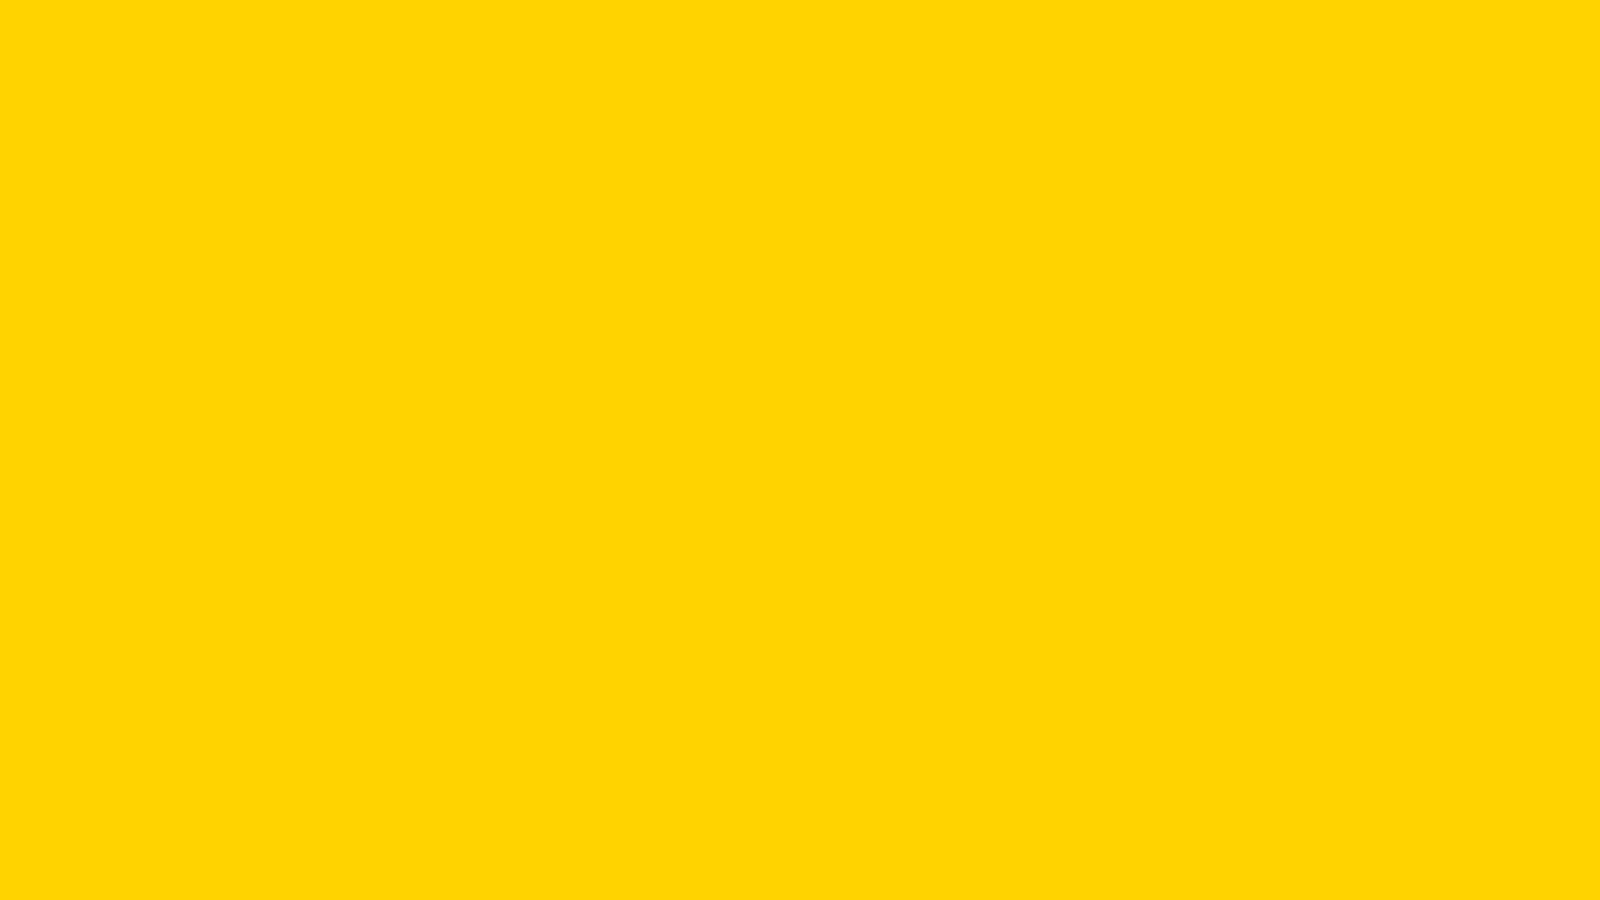 1600x900 Yellow NCS Solid Color Background